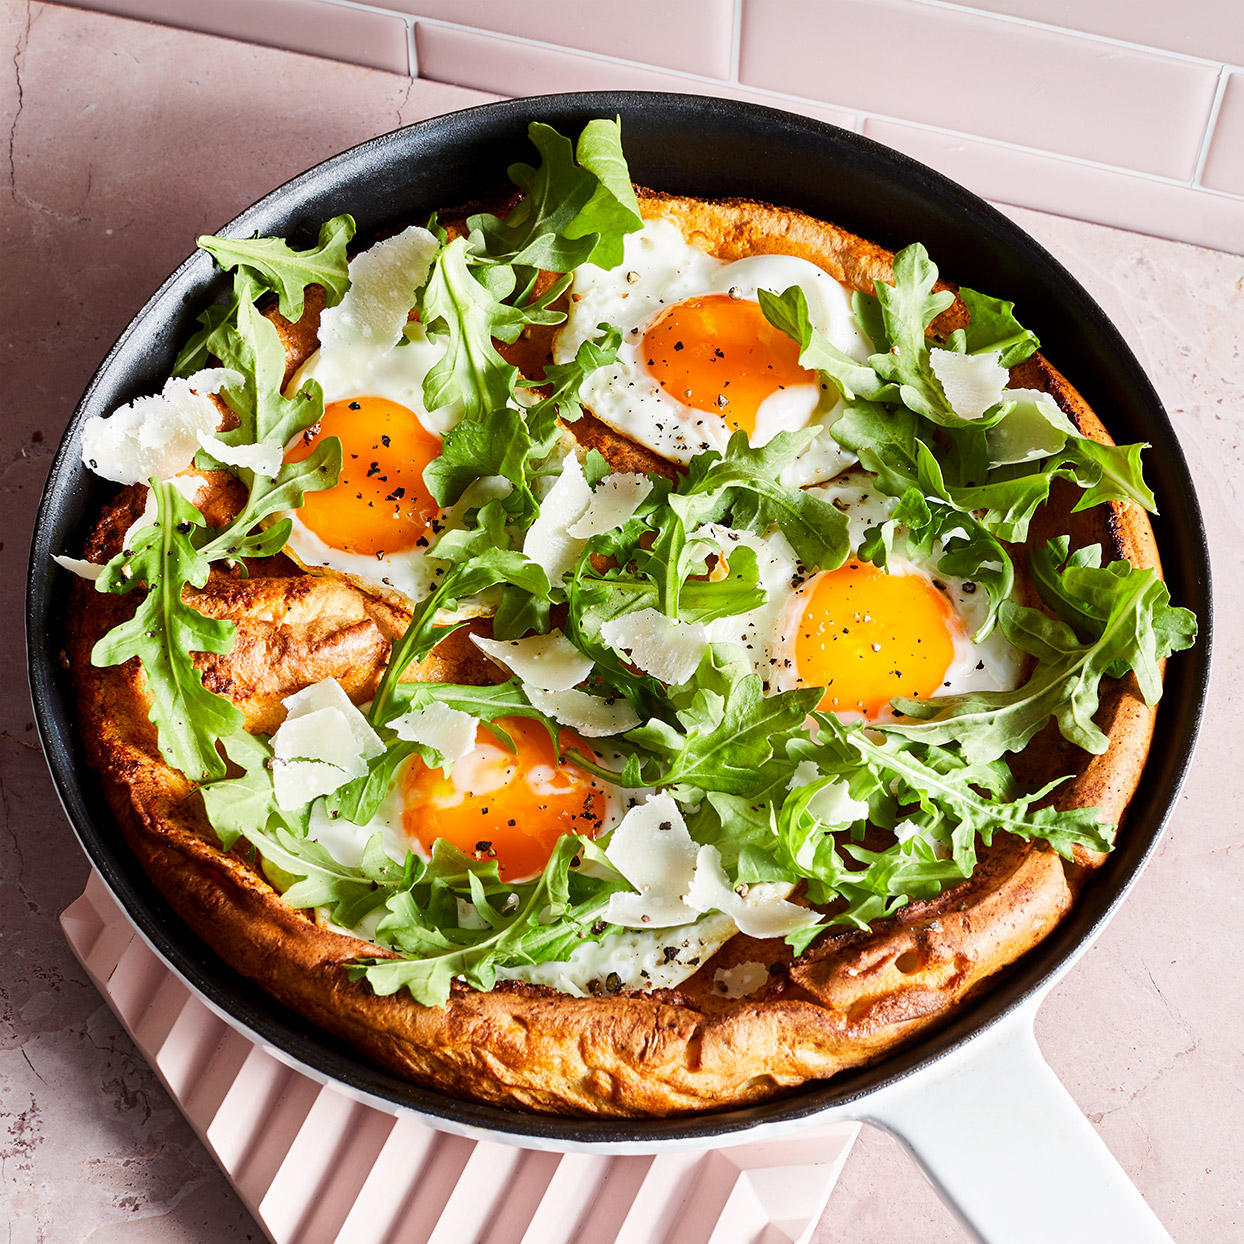 Also called a German pancake, this breakfast or brunch dish is delicious served with sweet or savory ingredients. Here, we make this Dutch baby recipe dinner-worthy by topping it with a fresh salad, cheese and fried eggs. Source: EatingWell Magazine, March 2020